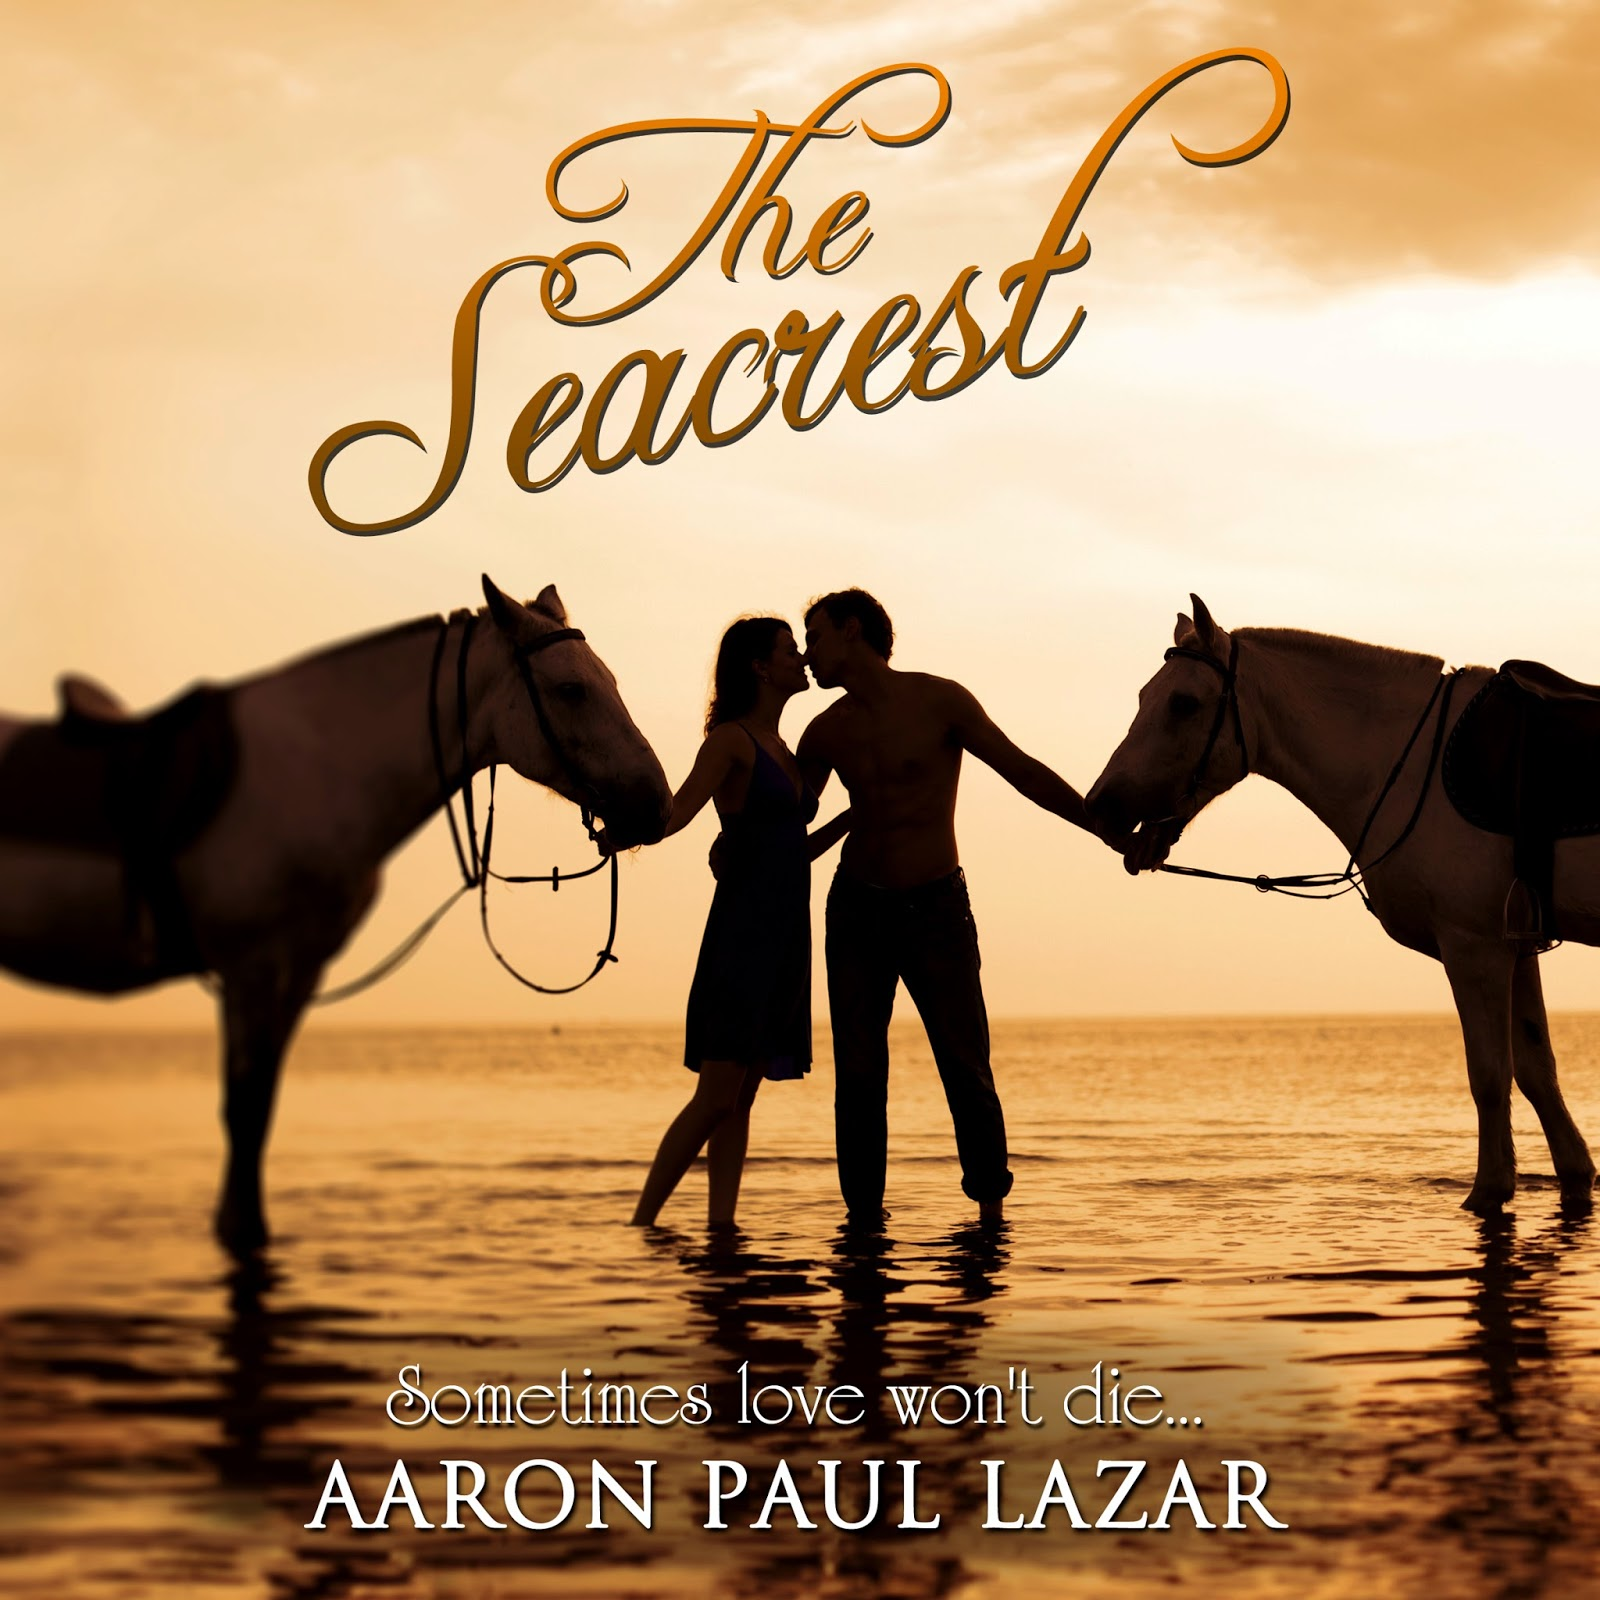 http://www.audible.com/pd/Romance/The-Seacrest-Audiobook/B00H9S0AQU/ref=a_search_c4_1_1_srImg?qid=1390133974&sr=1-1